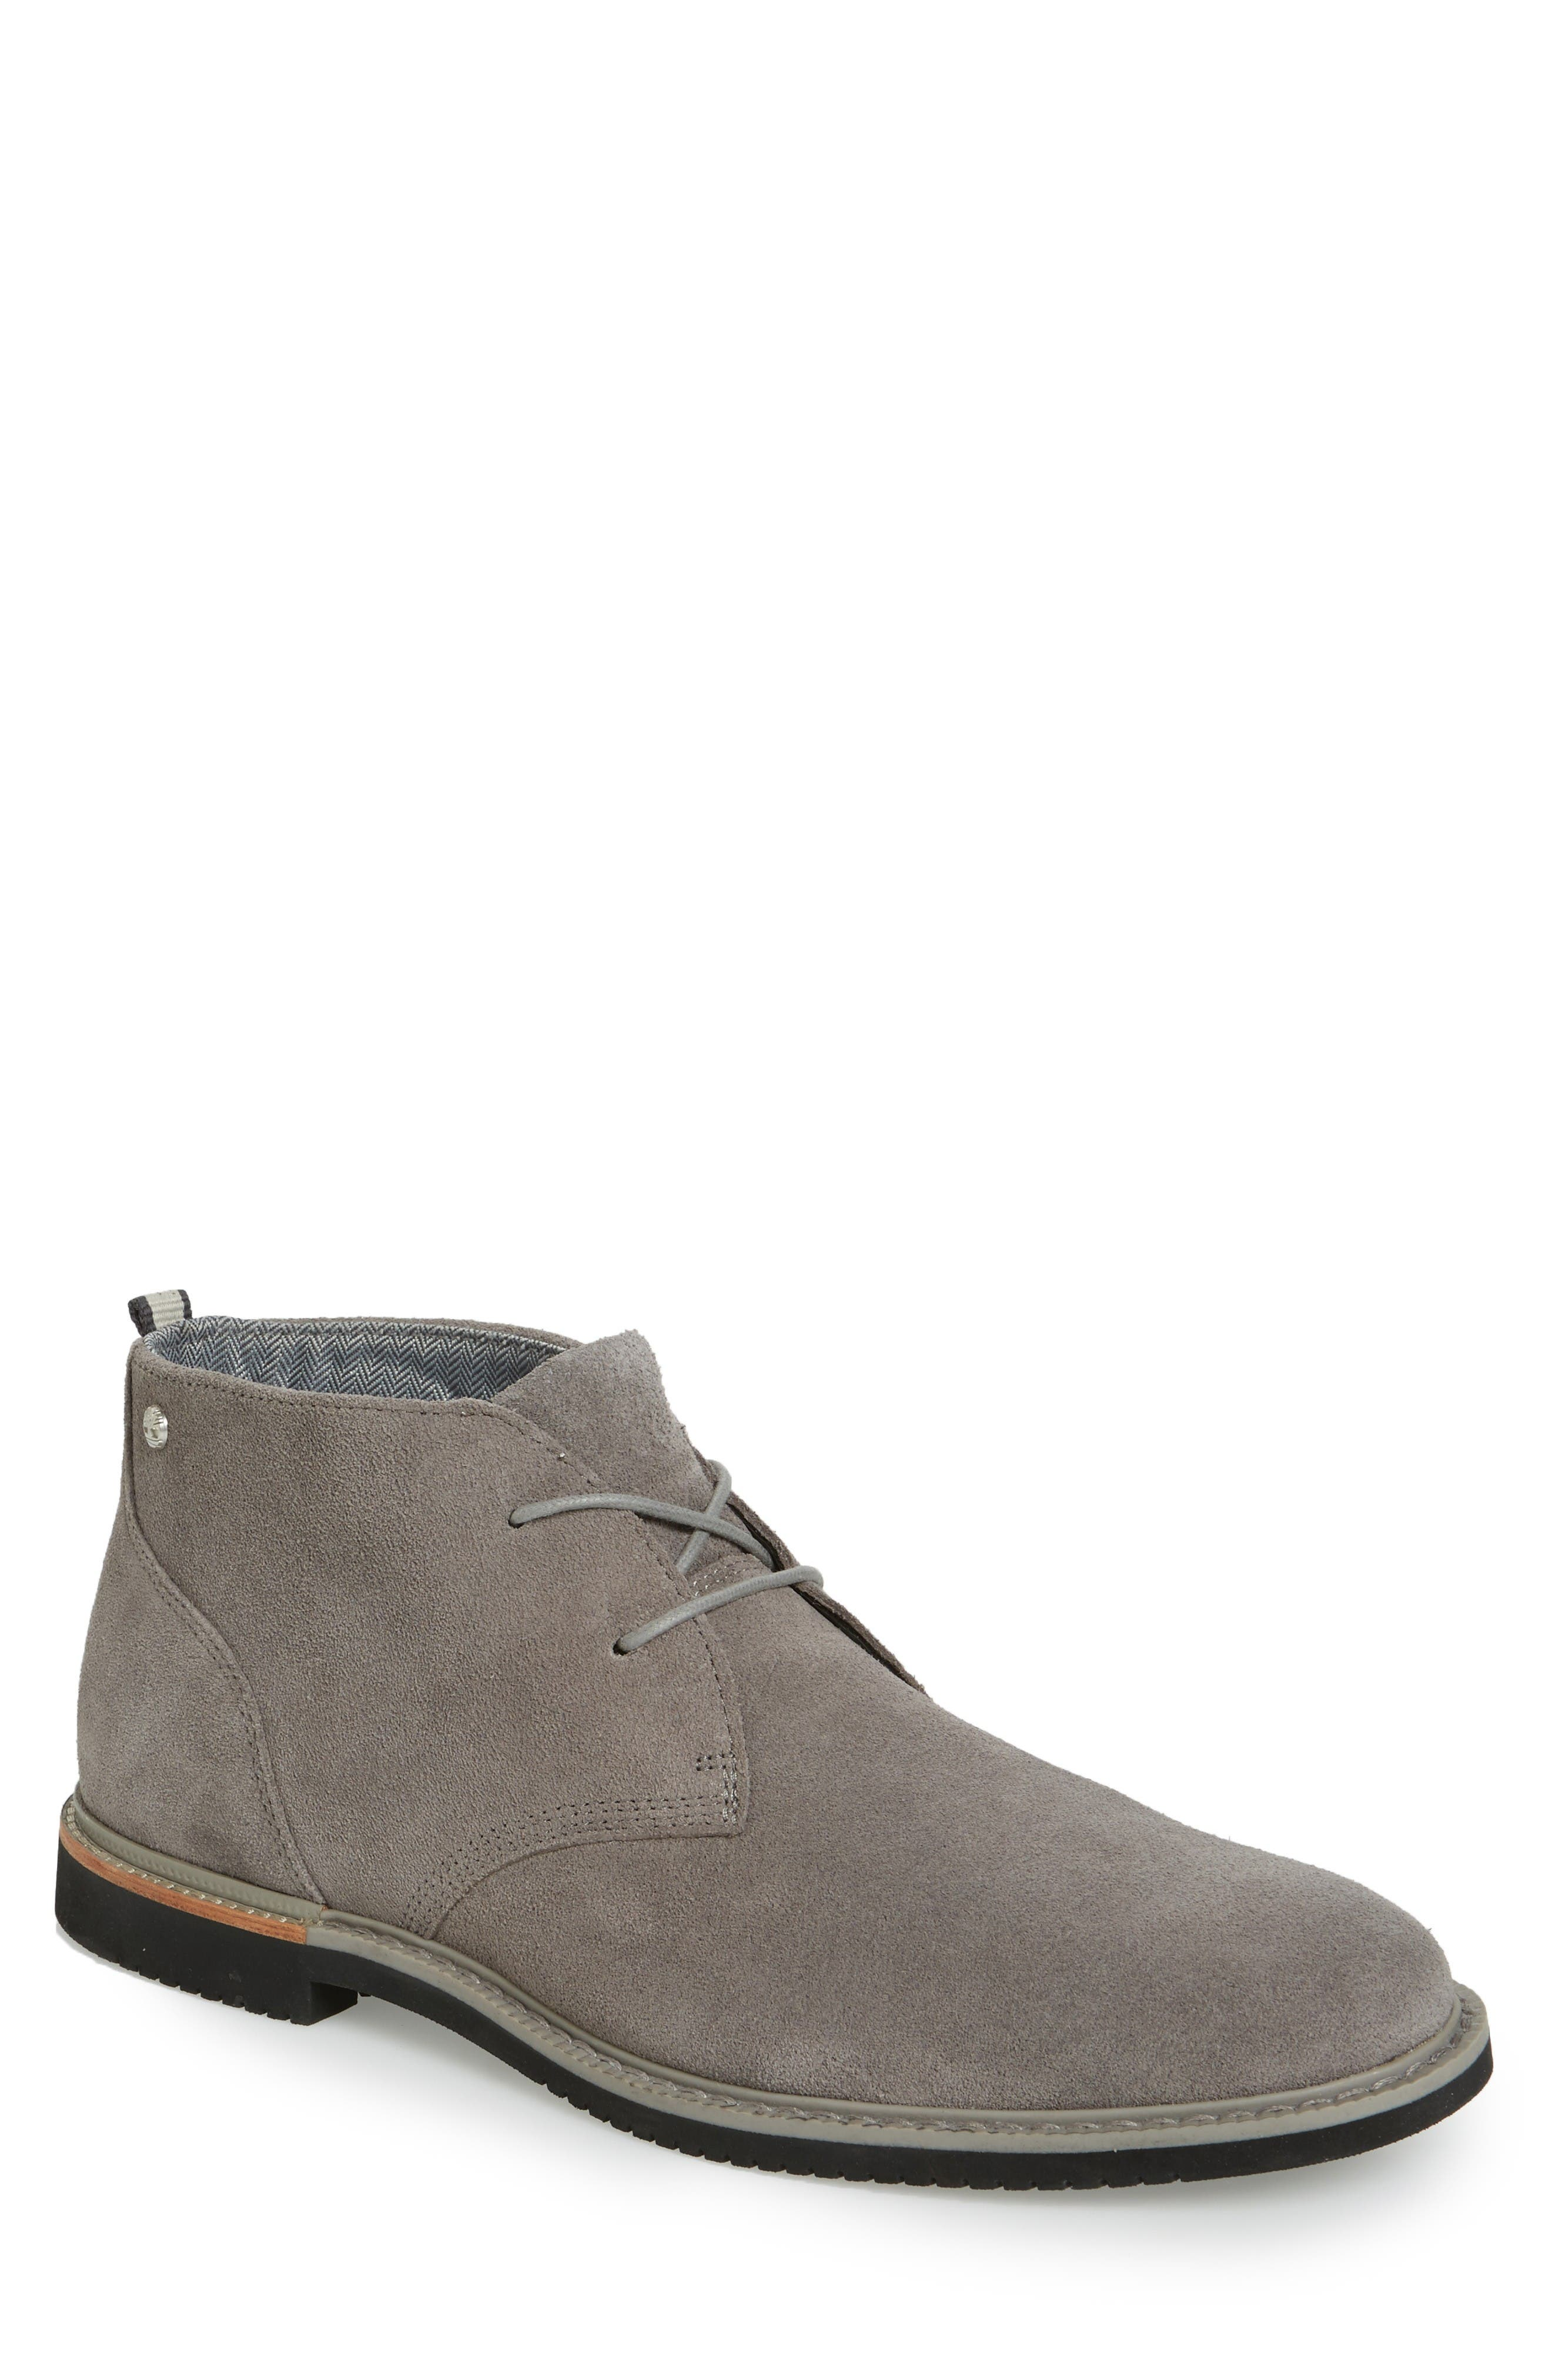 Main Image - Timberland Brook Park Chukka Boot (Men)